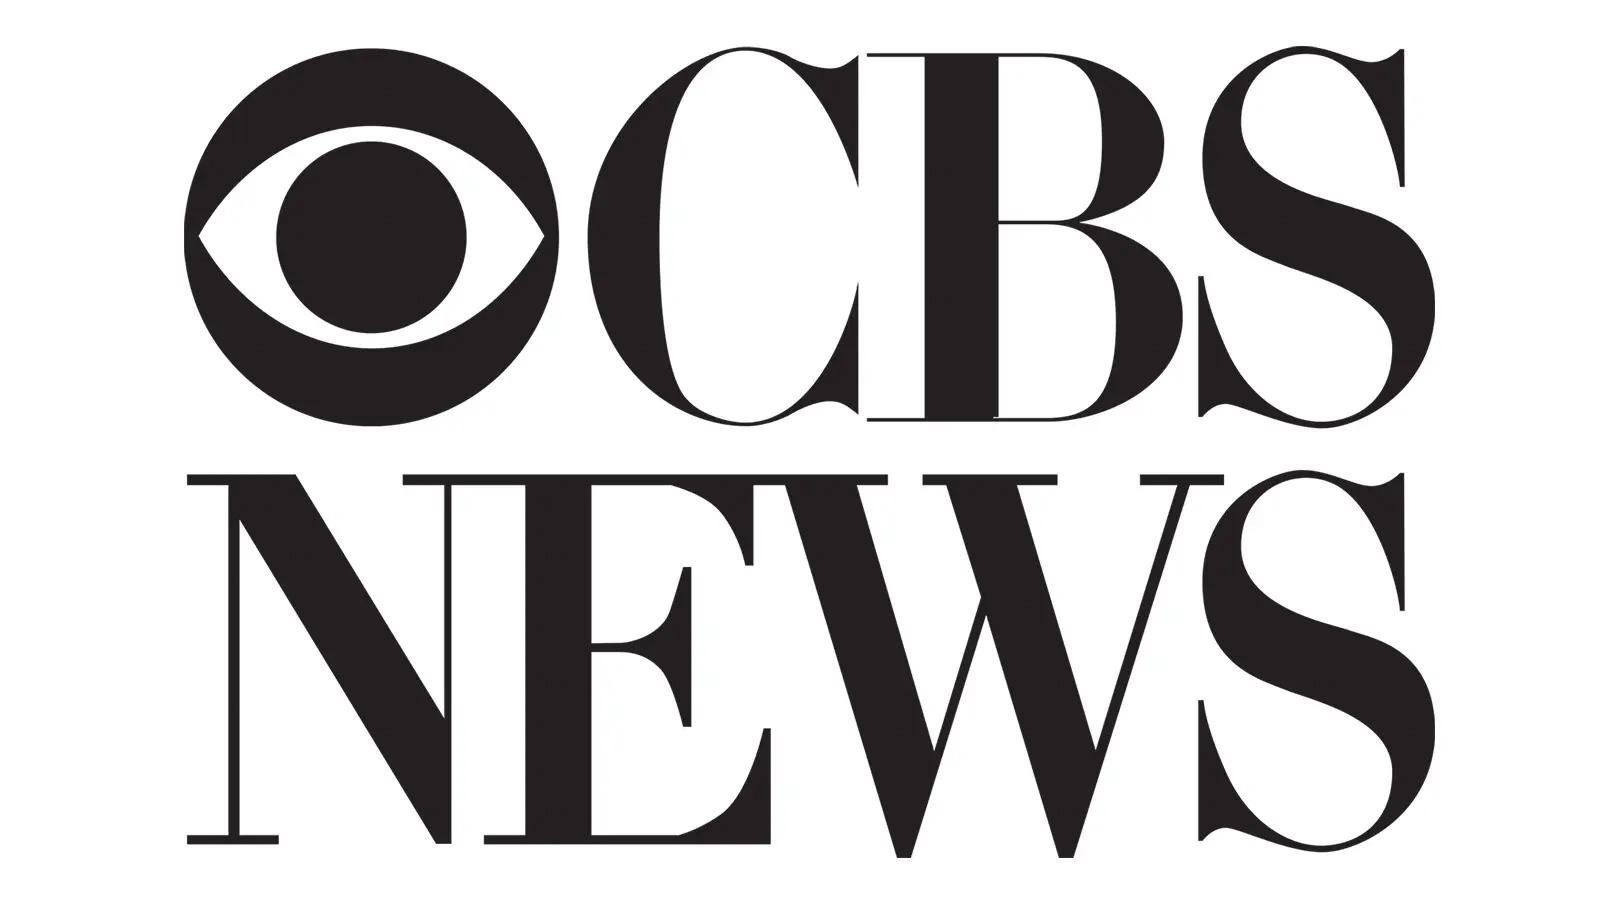 WSN Kit CBS News